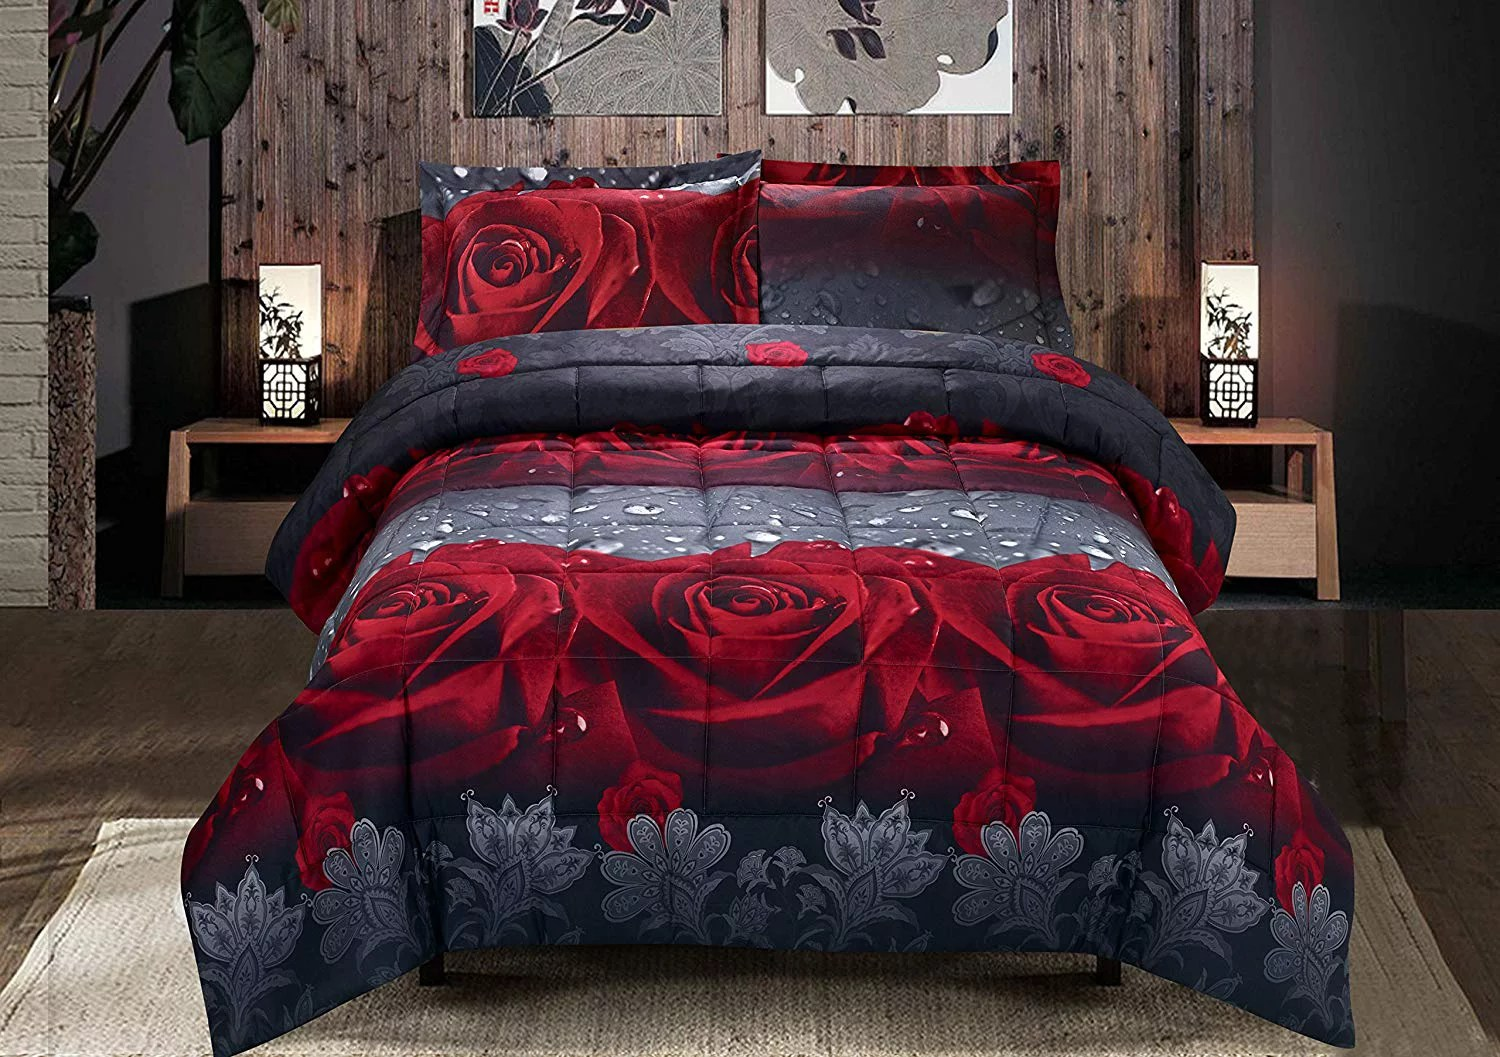 hig 3d comforter set 3 piece 3d rose love romantic moment printed comforter set queen king size y28 box stitched soft breathable